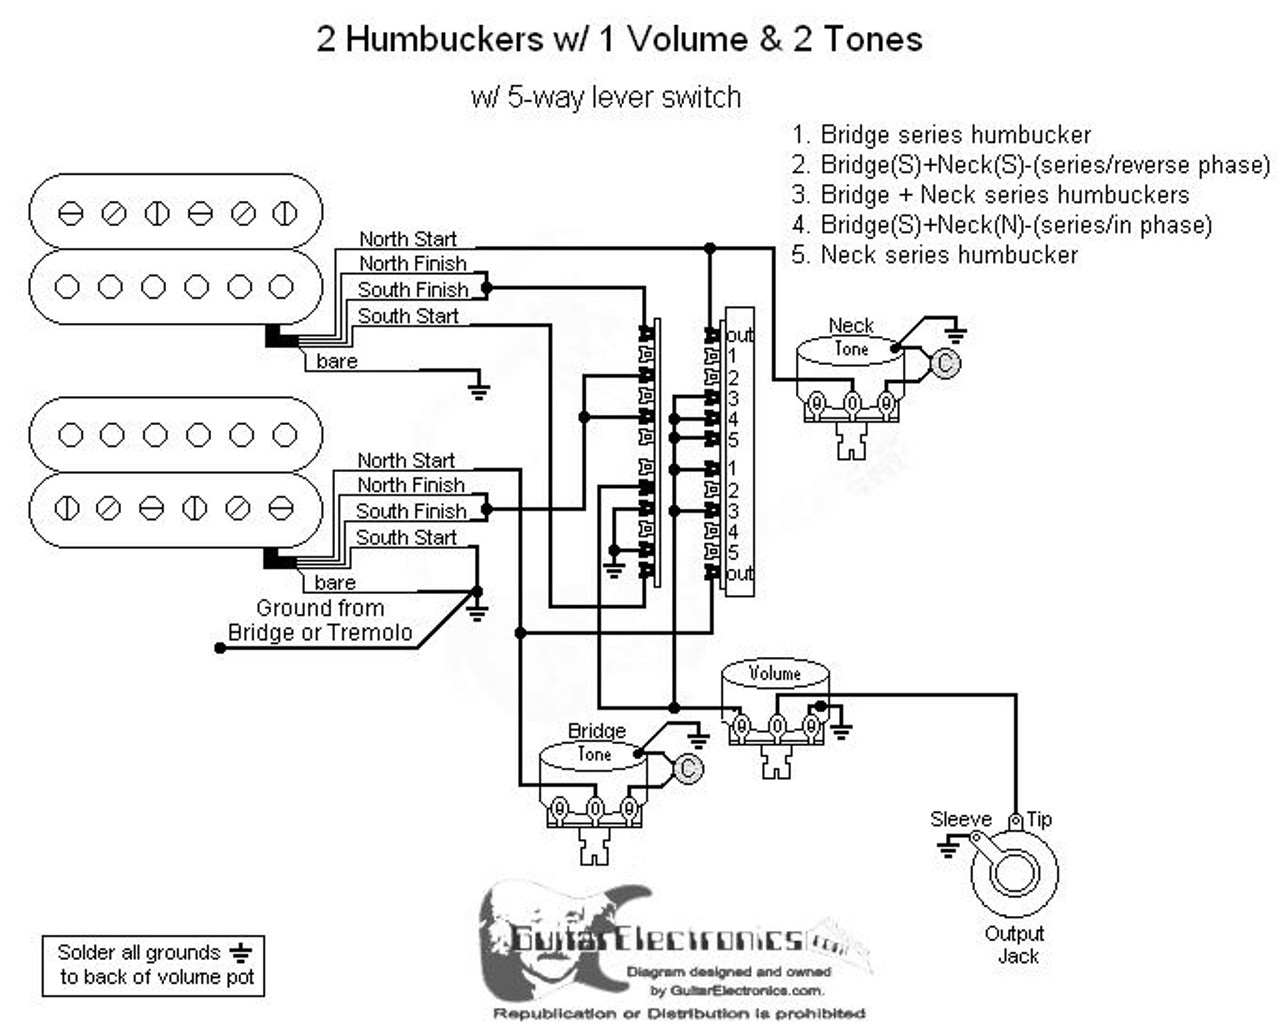 2 humbuckers 5 way lever switch 1 volume 2 tone 03 Dimmer Switch Wiring Diagram